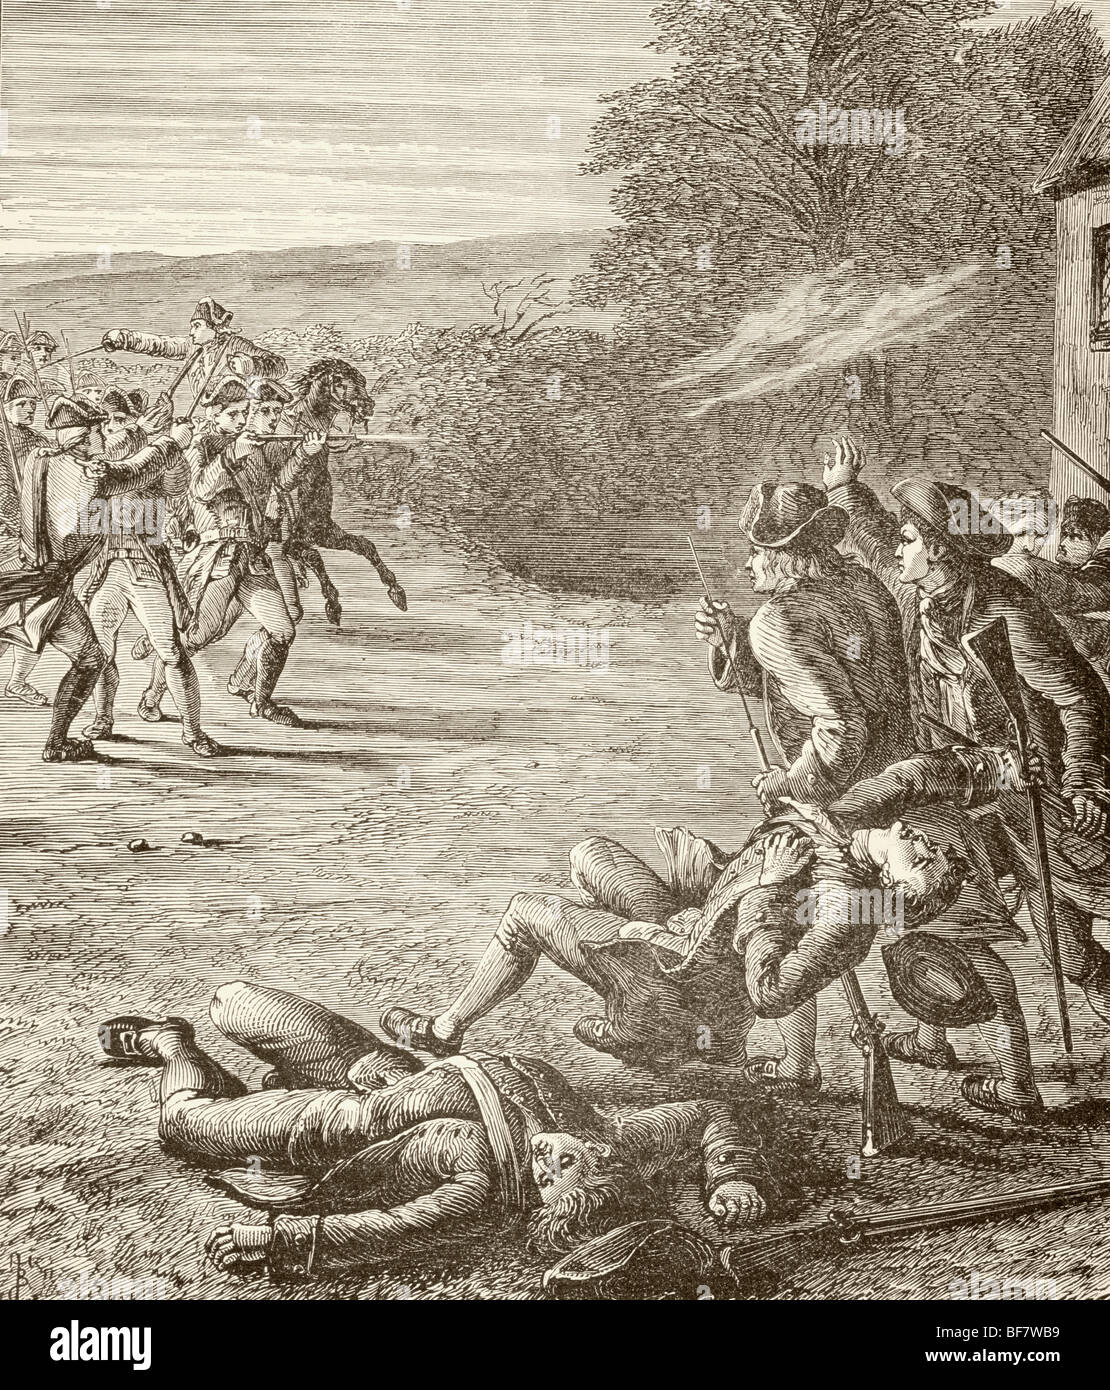 An incident at Lexington during the Battles of Lexington and Concord, April 19 1775, the first battle of the American - Stock Image